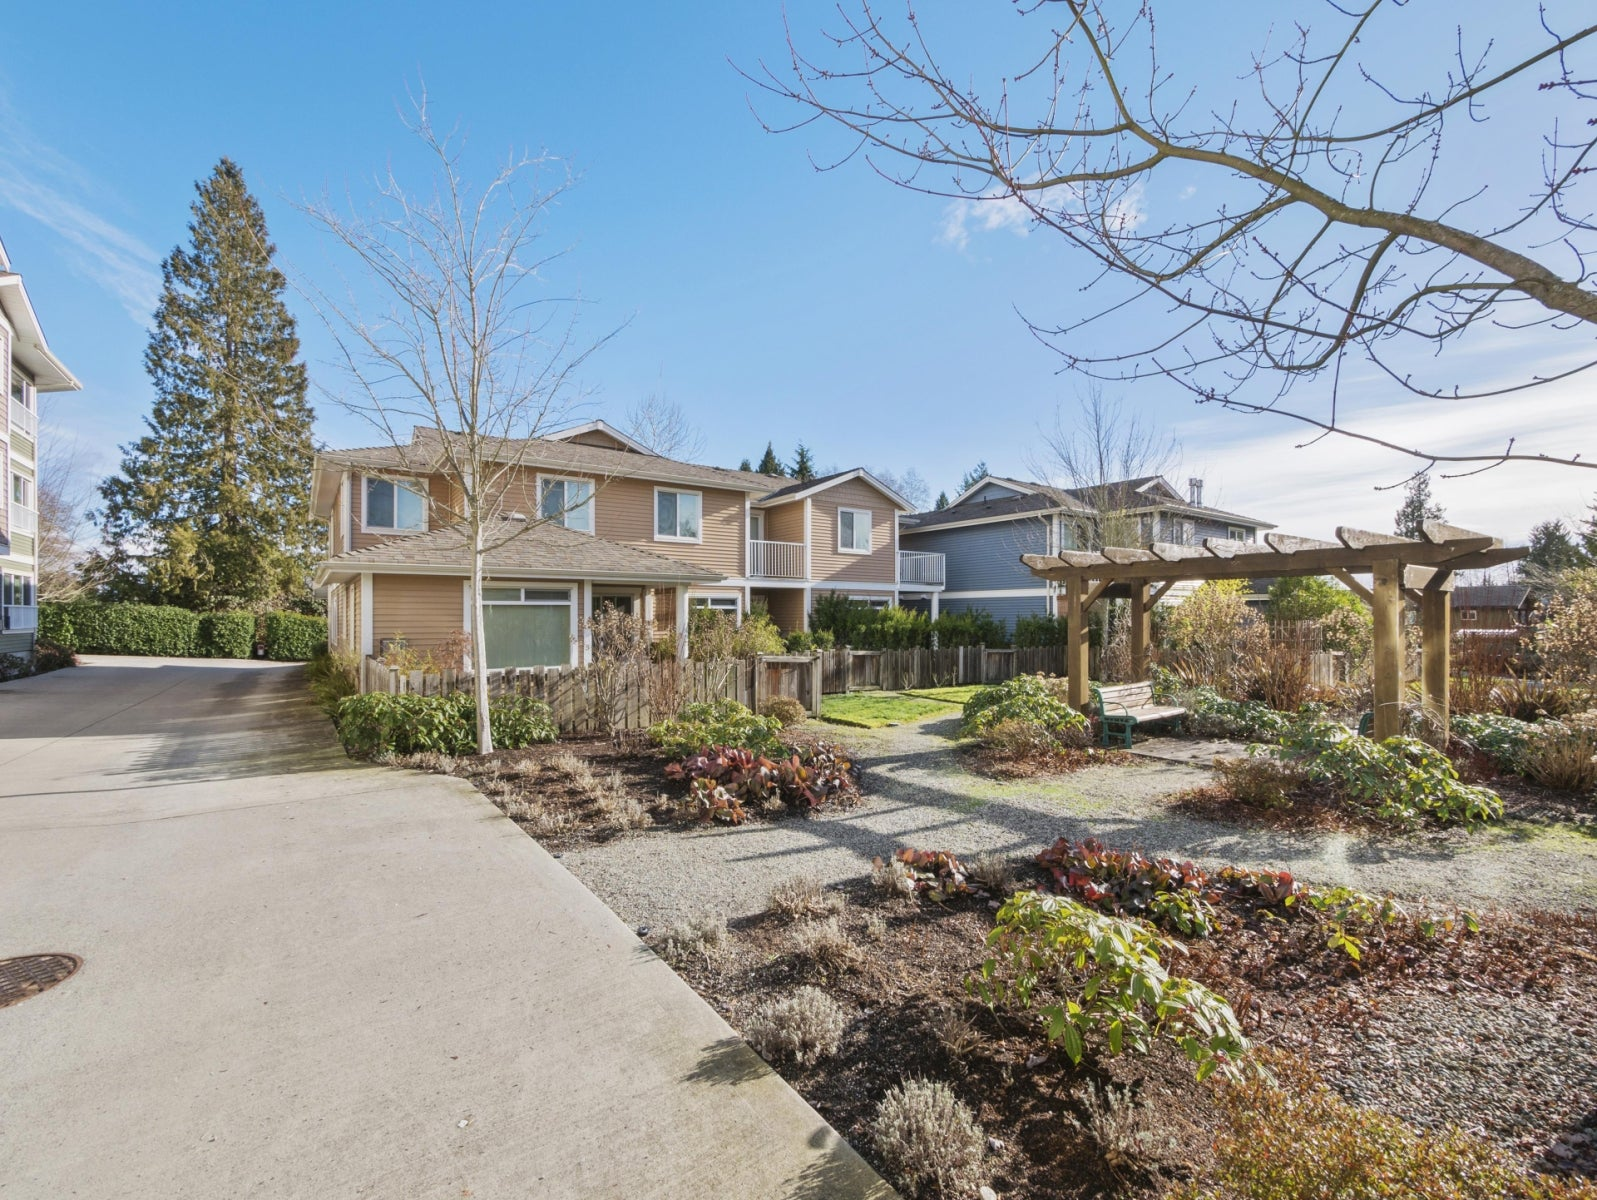 11 624 SHAW ROAD - Gibsons & Area Townhouse for sale, 3 Bedrooms (R2234910) #5